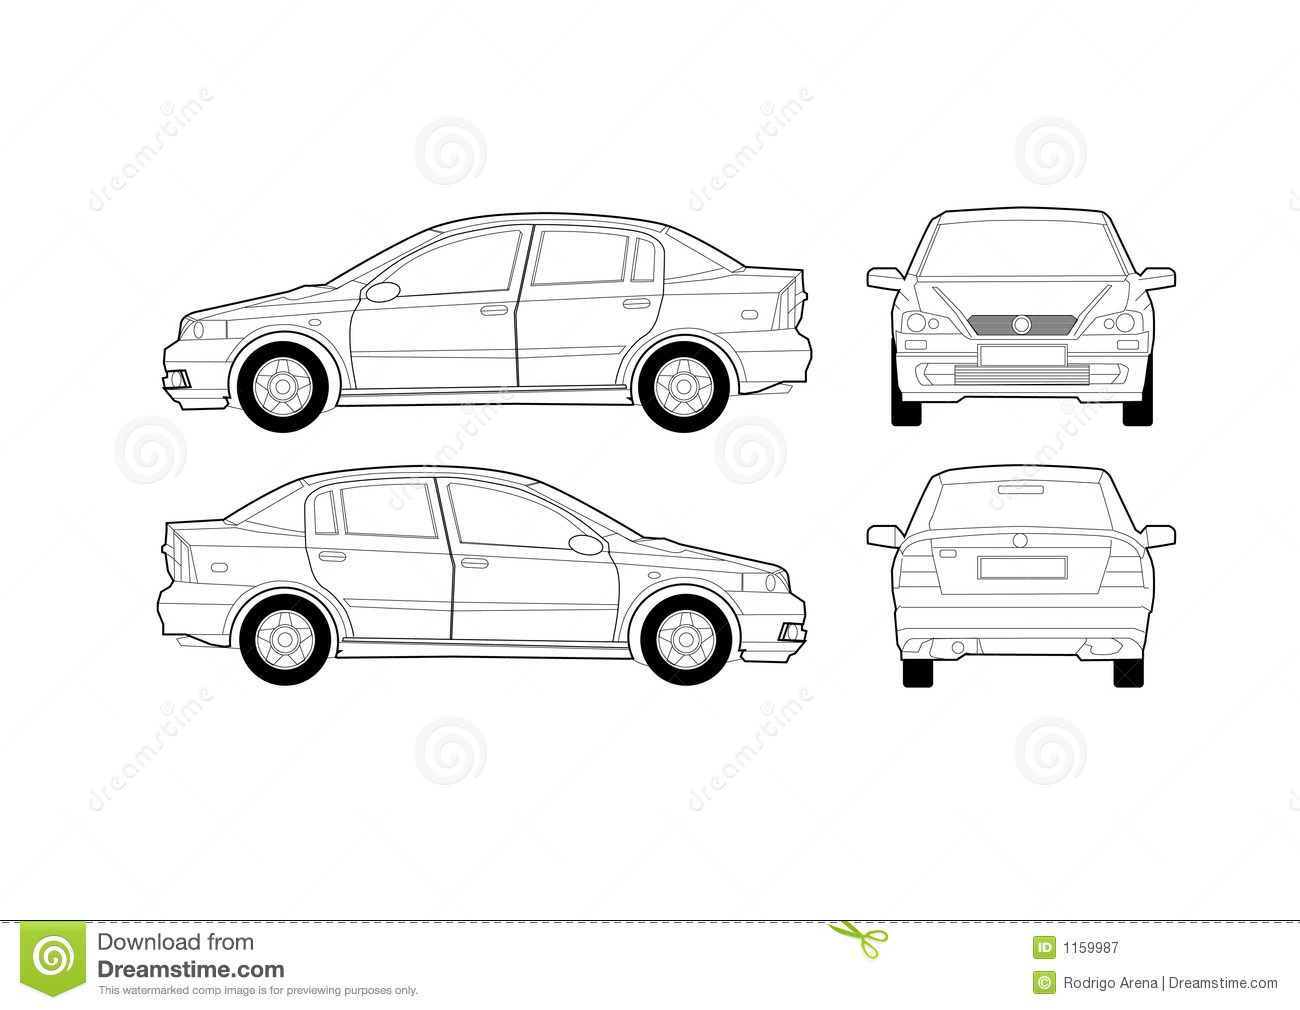 Generic Saloon Car Diagram stock vector. Illustration of carry ...